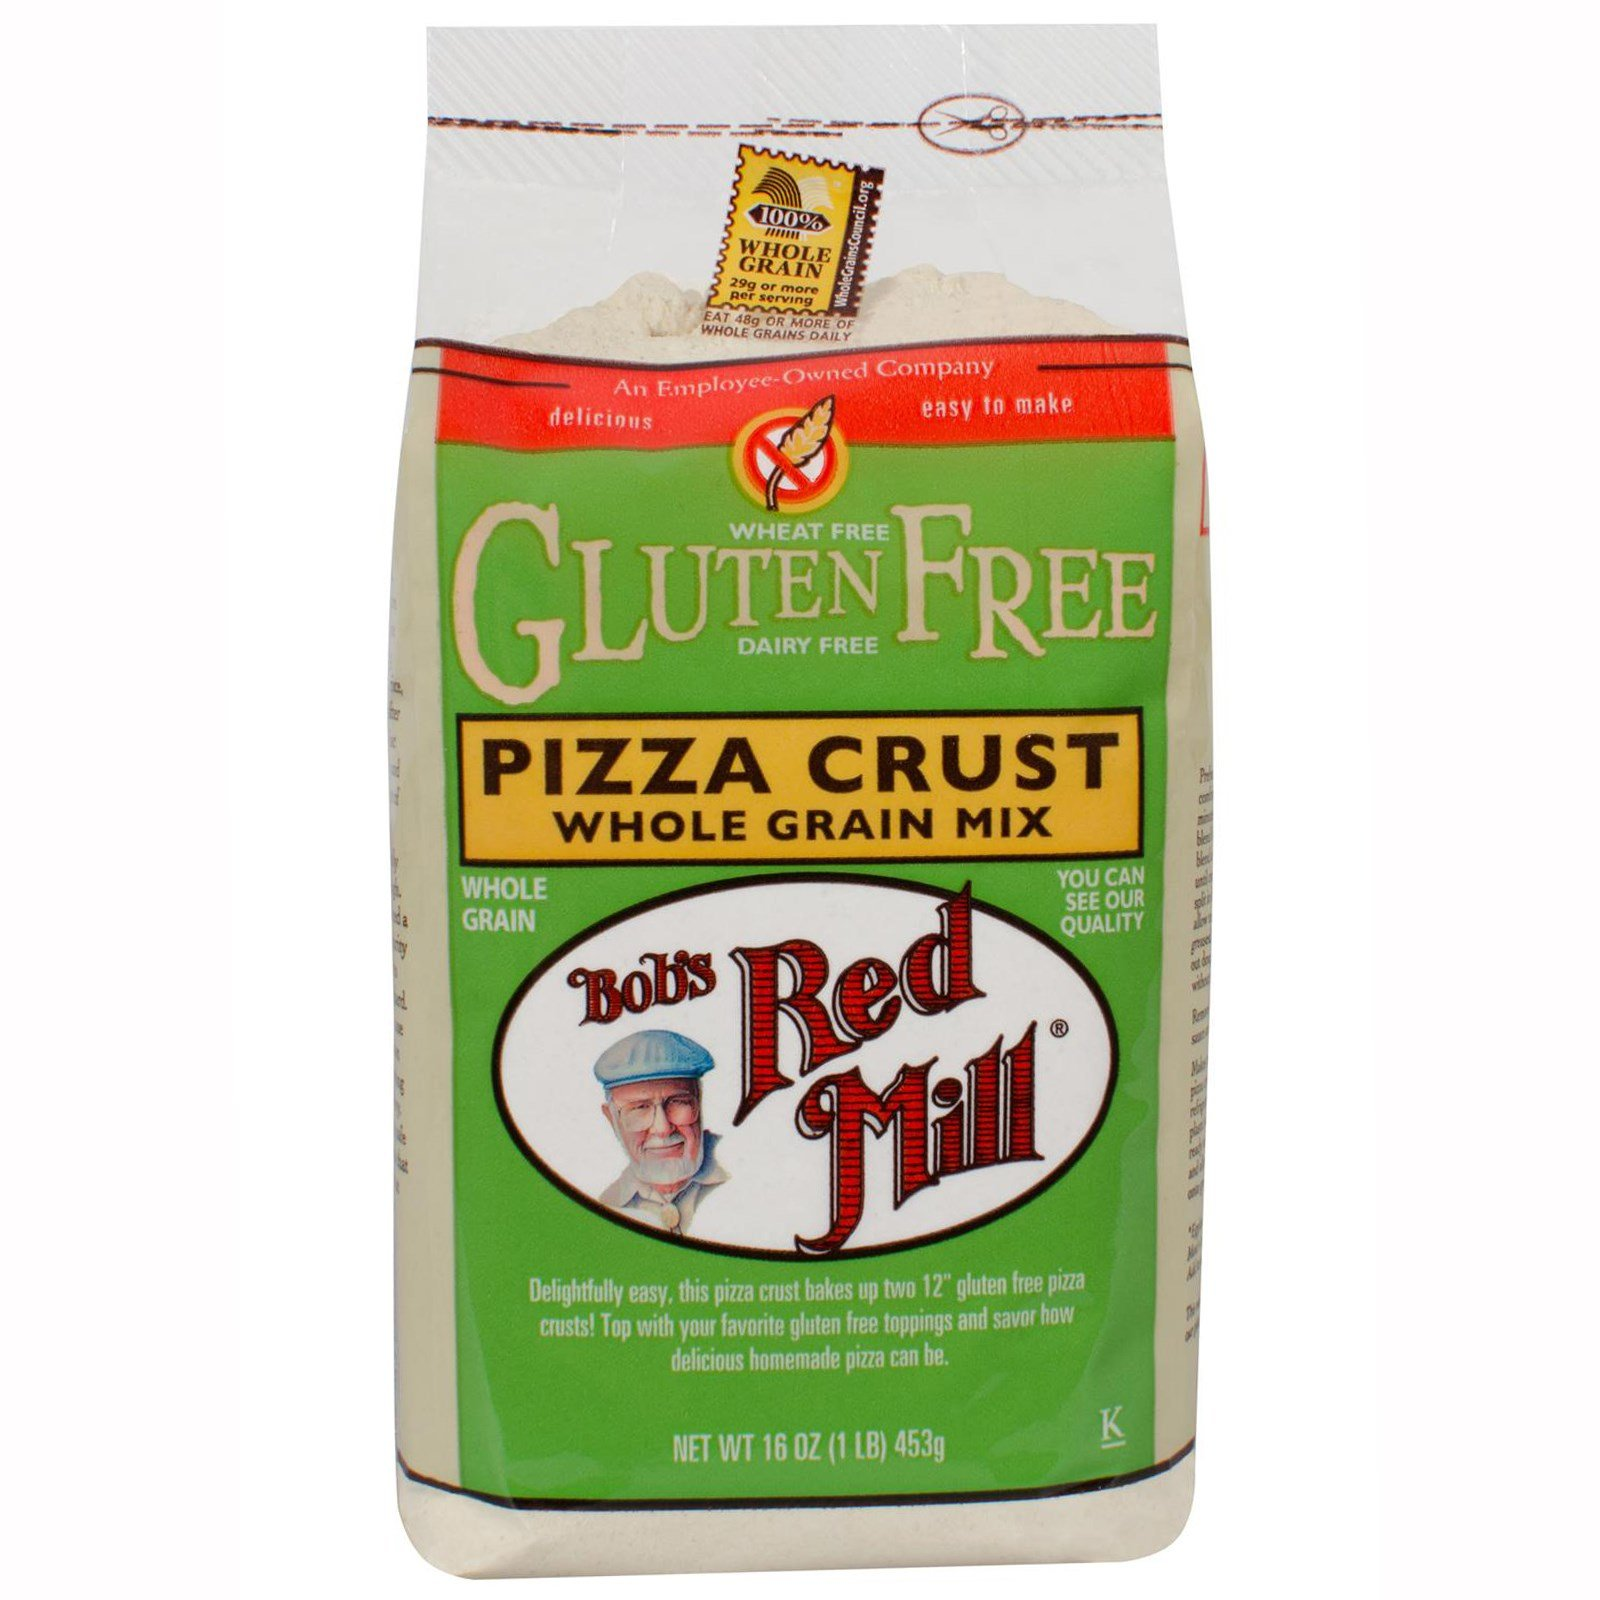 Bob's Red Mill, Gluten Free Pizza Crust Whole Grain Mix, 16 oz(Pack of 3)